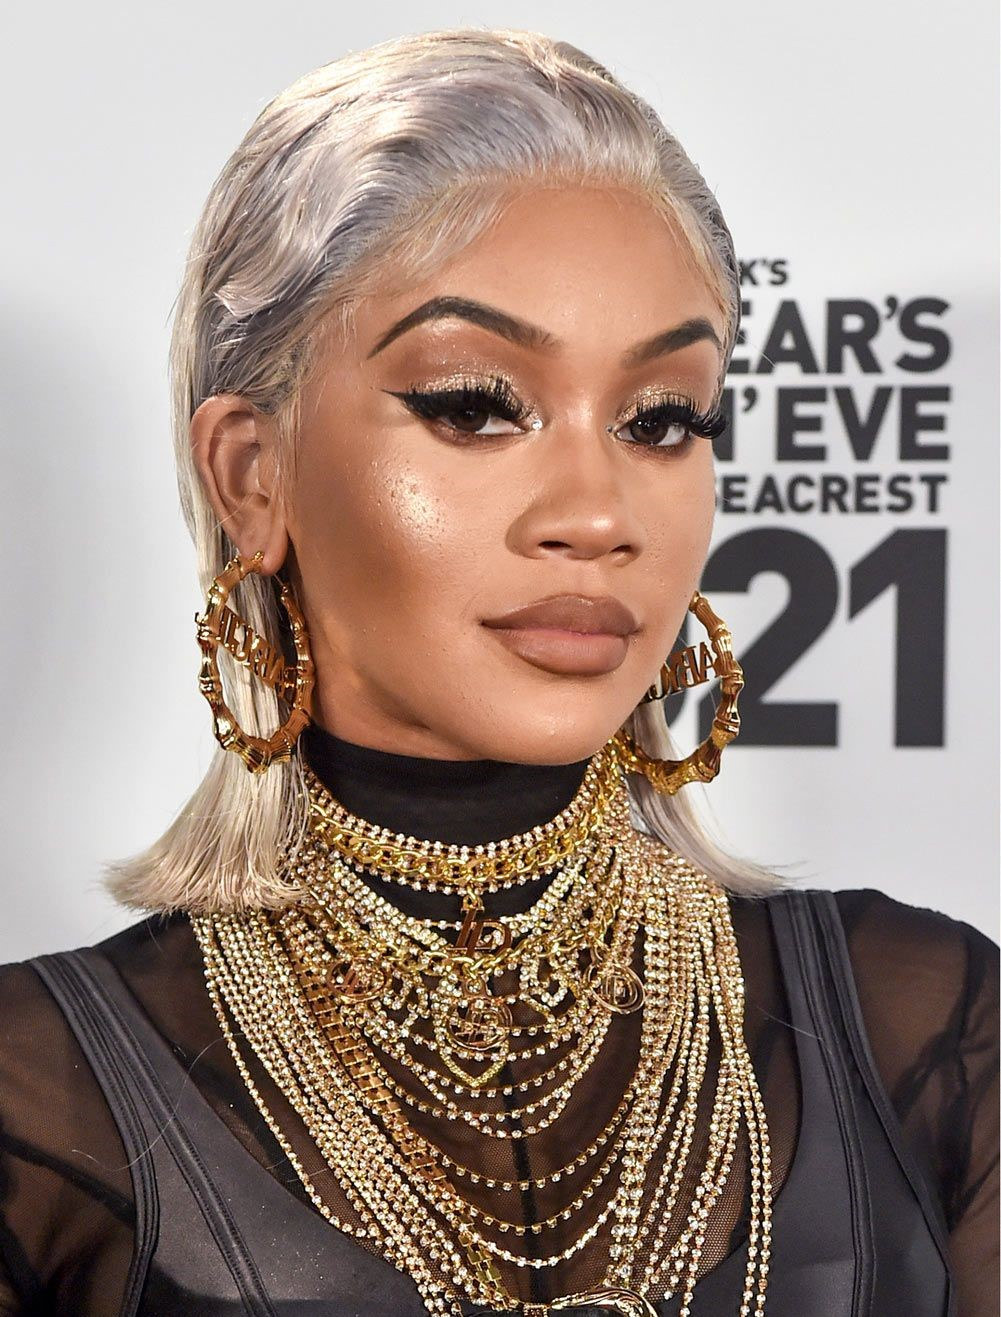 The Source |HERSTYLE: New Hair Who Dis? Hair Style Icon Saweetie Never Disappoints. Take A Look At Some Of Our Favorites